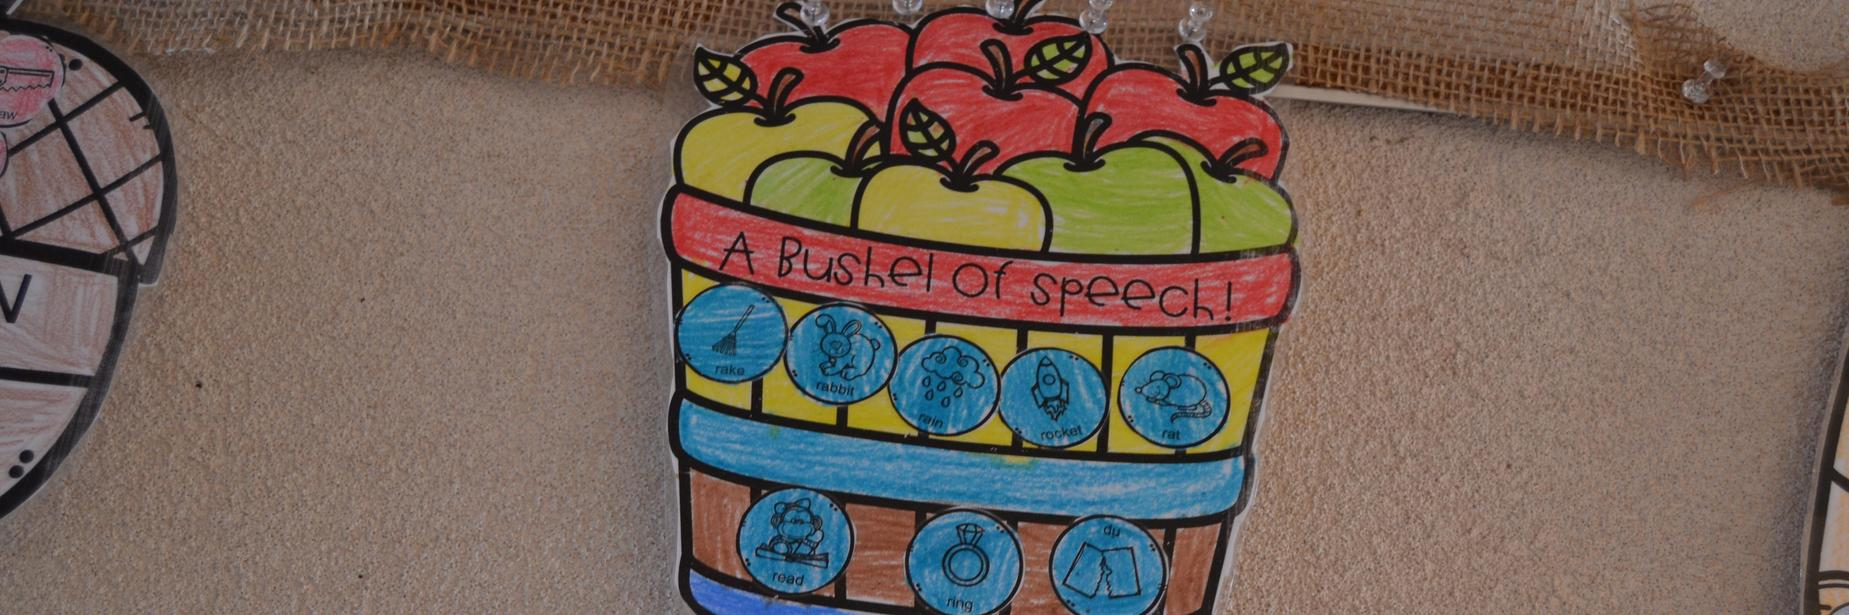 A Bushel of Speech